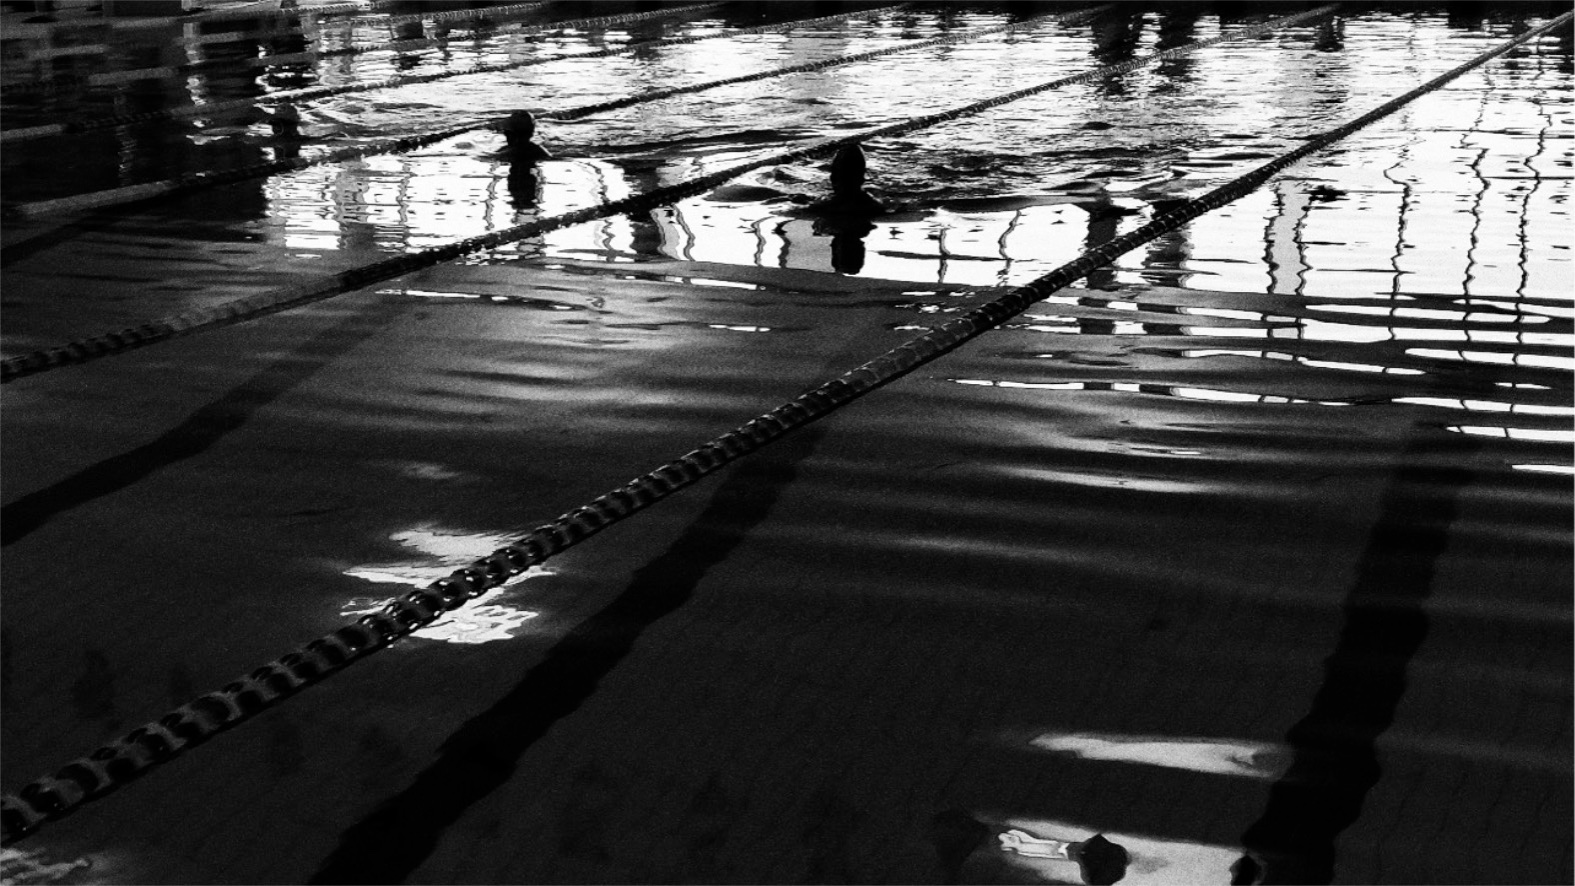 Kids competing 200 m breaststroke for the first time, Timaru, New Zealand, January 2016.